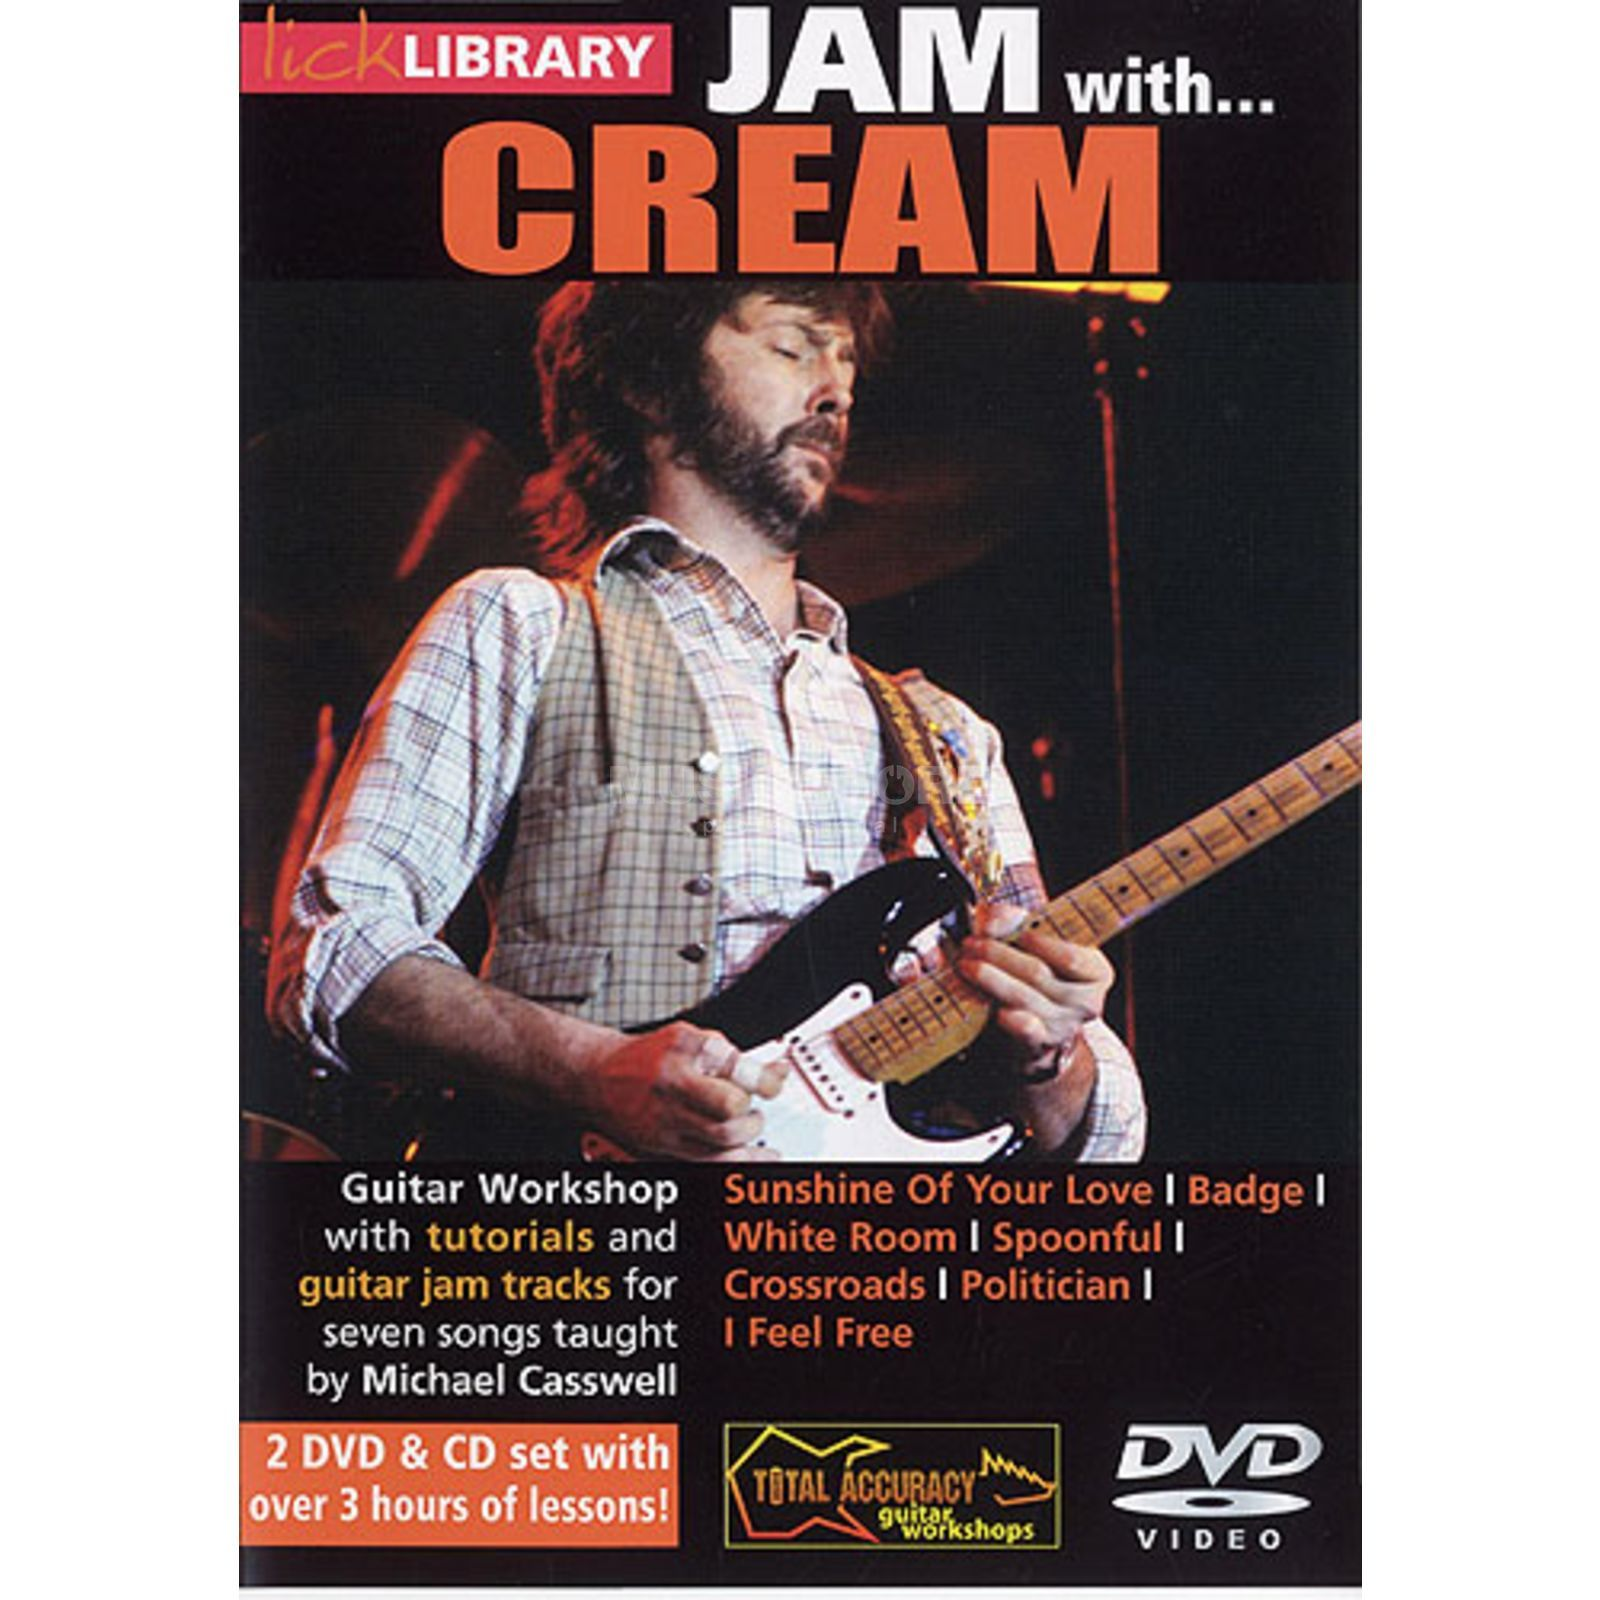 Roadrock International Lick Library: Jam With Cream DVD, CD Produktbillede